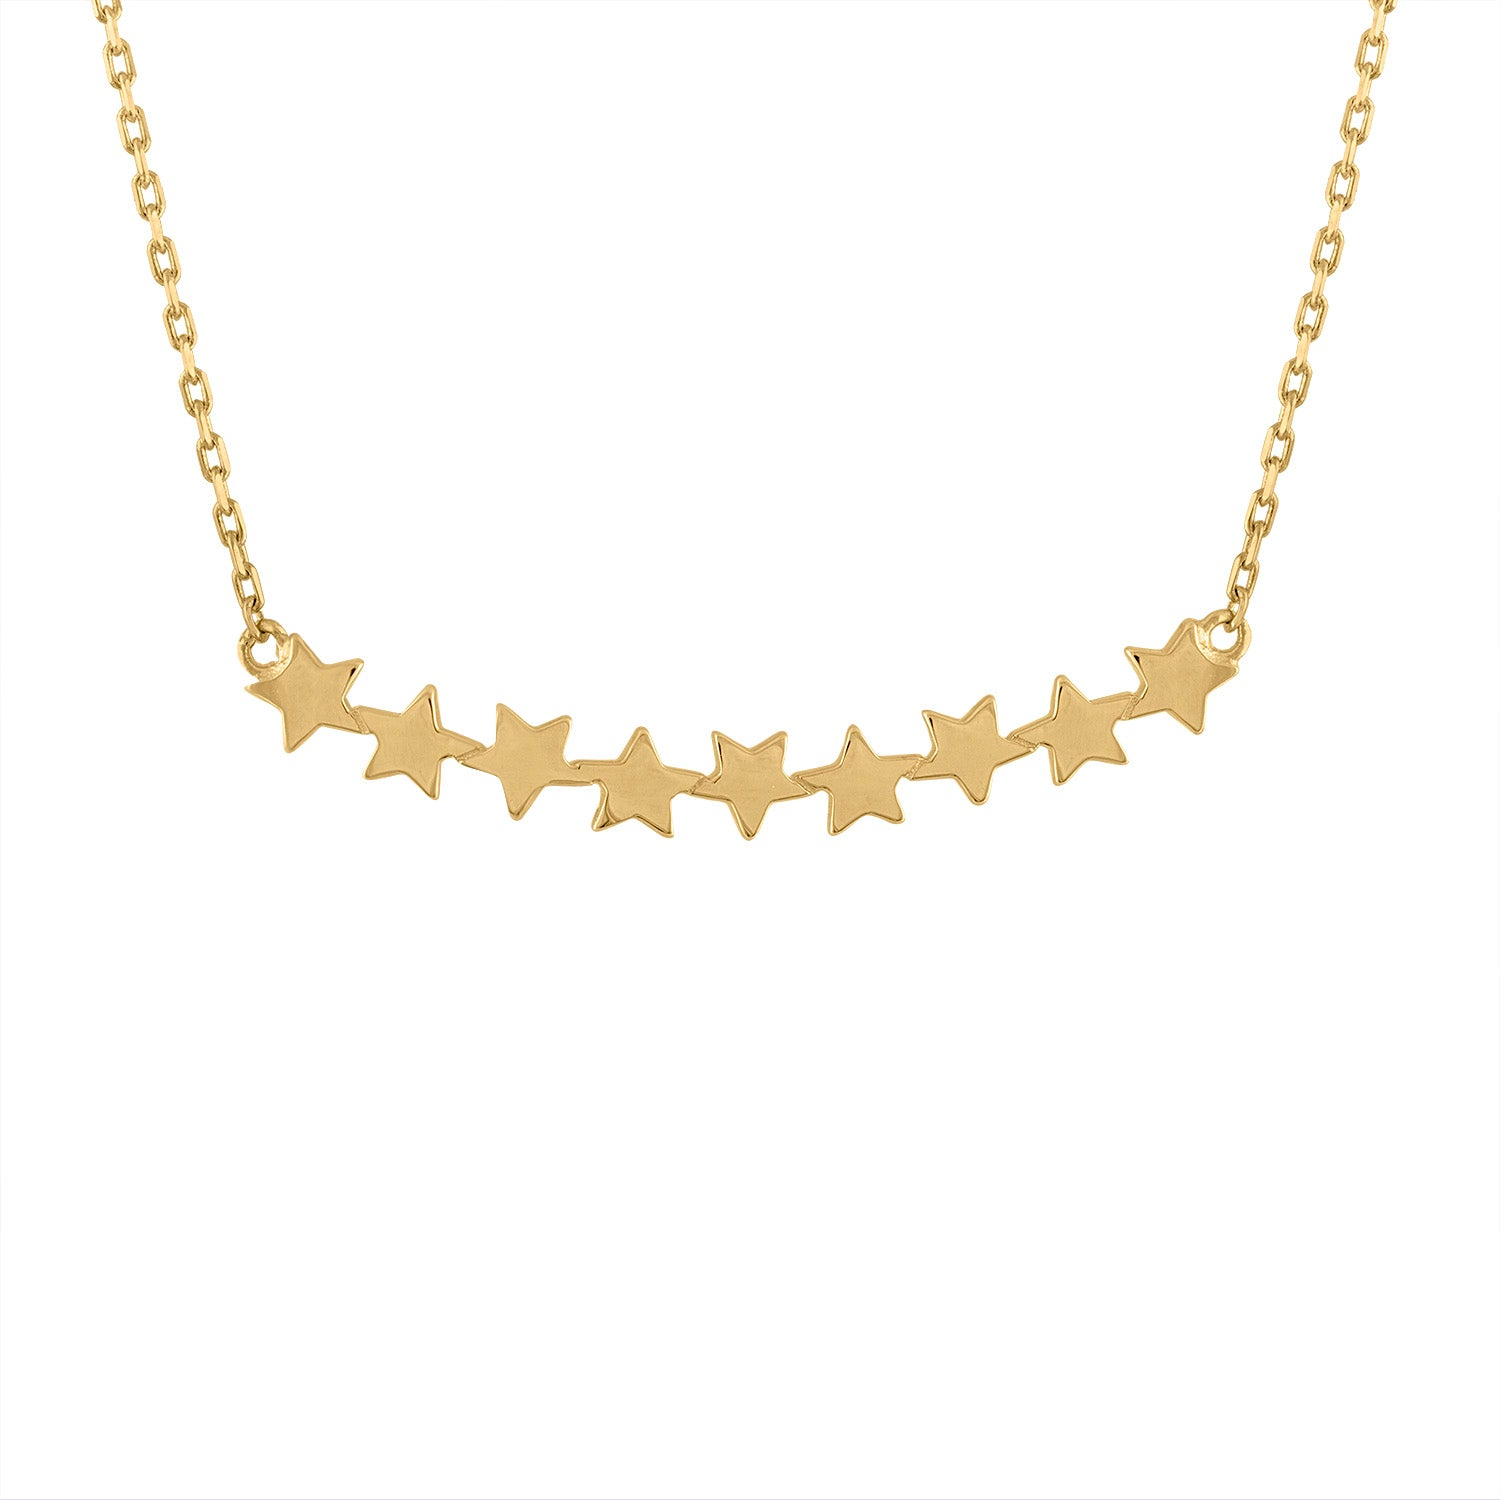 14KT GOLD 9 CONNECTED STARS NECKLACE